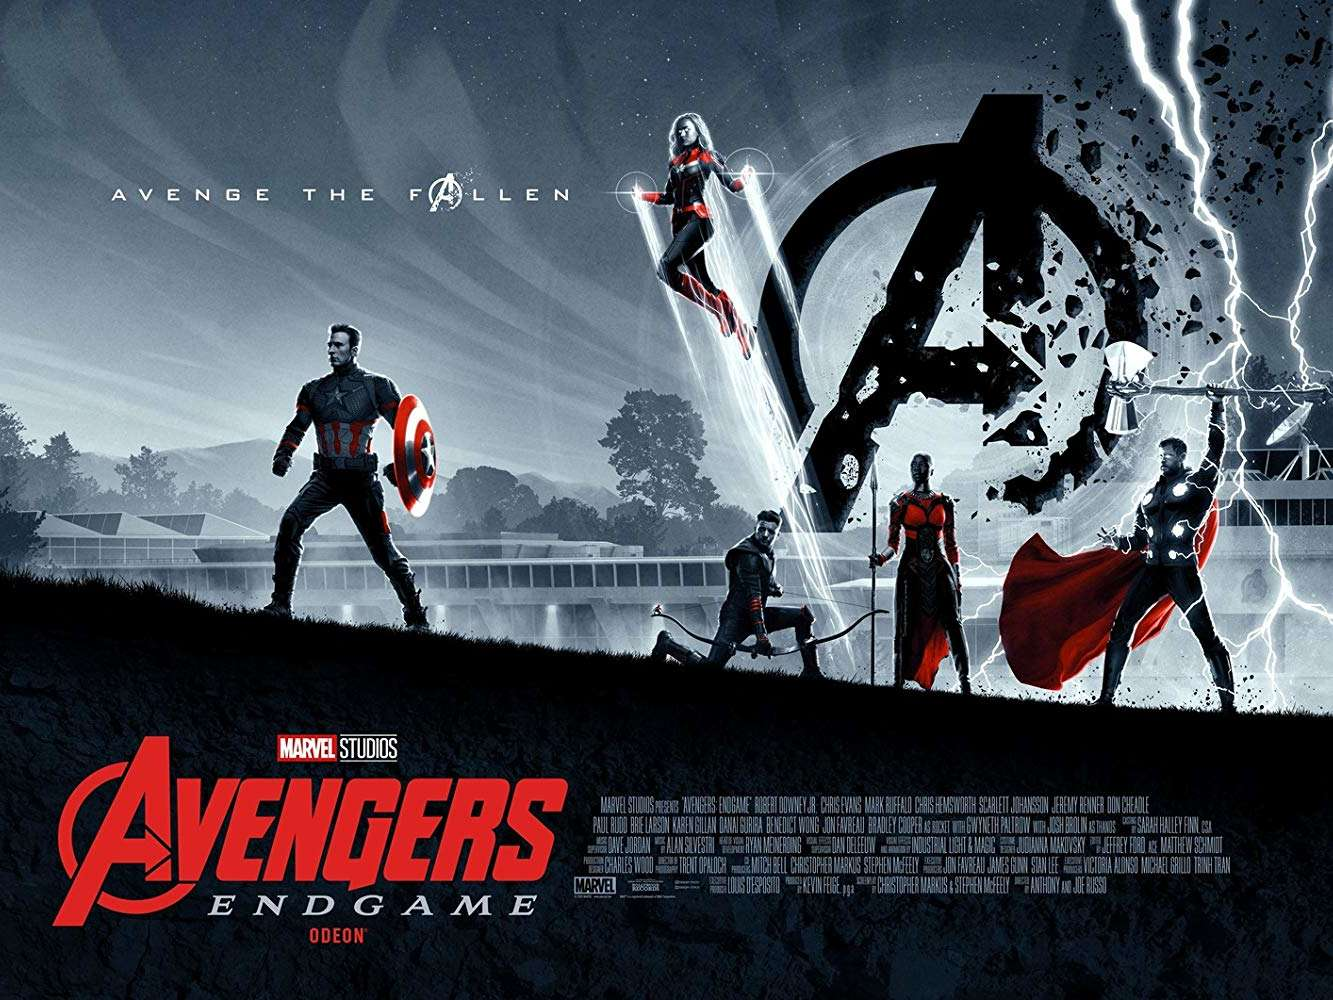 An image of the Avengers standing in a field, left to right: Captain America, Captain Marvel, Hawkeye, Okoye, and Thor